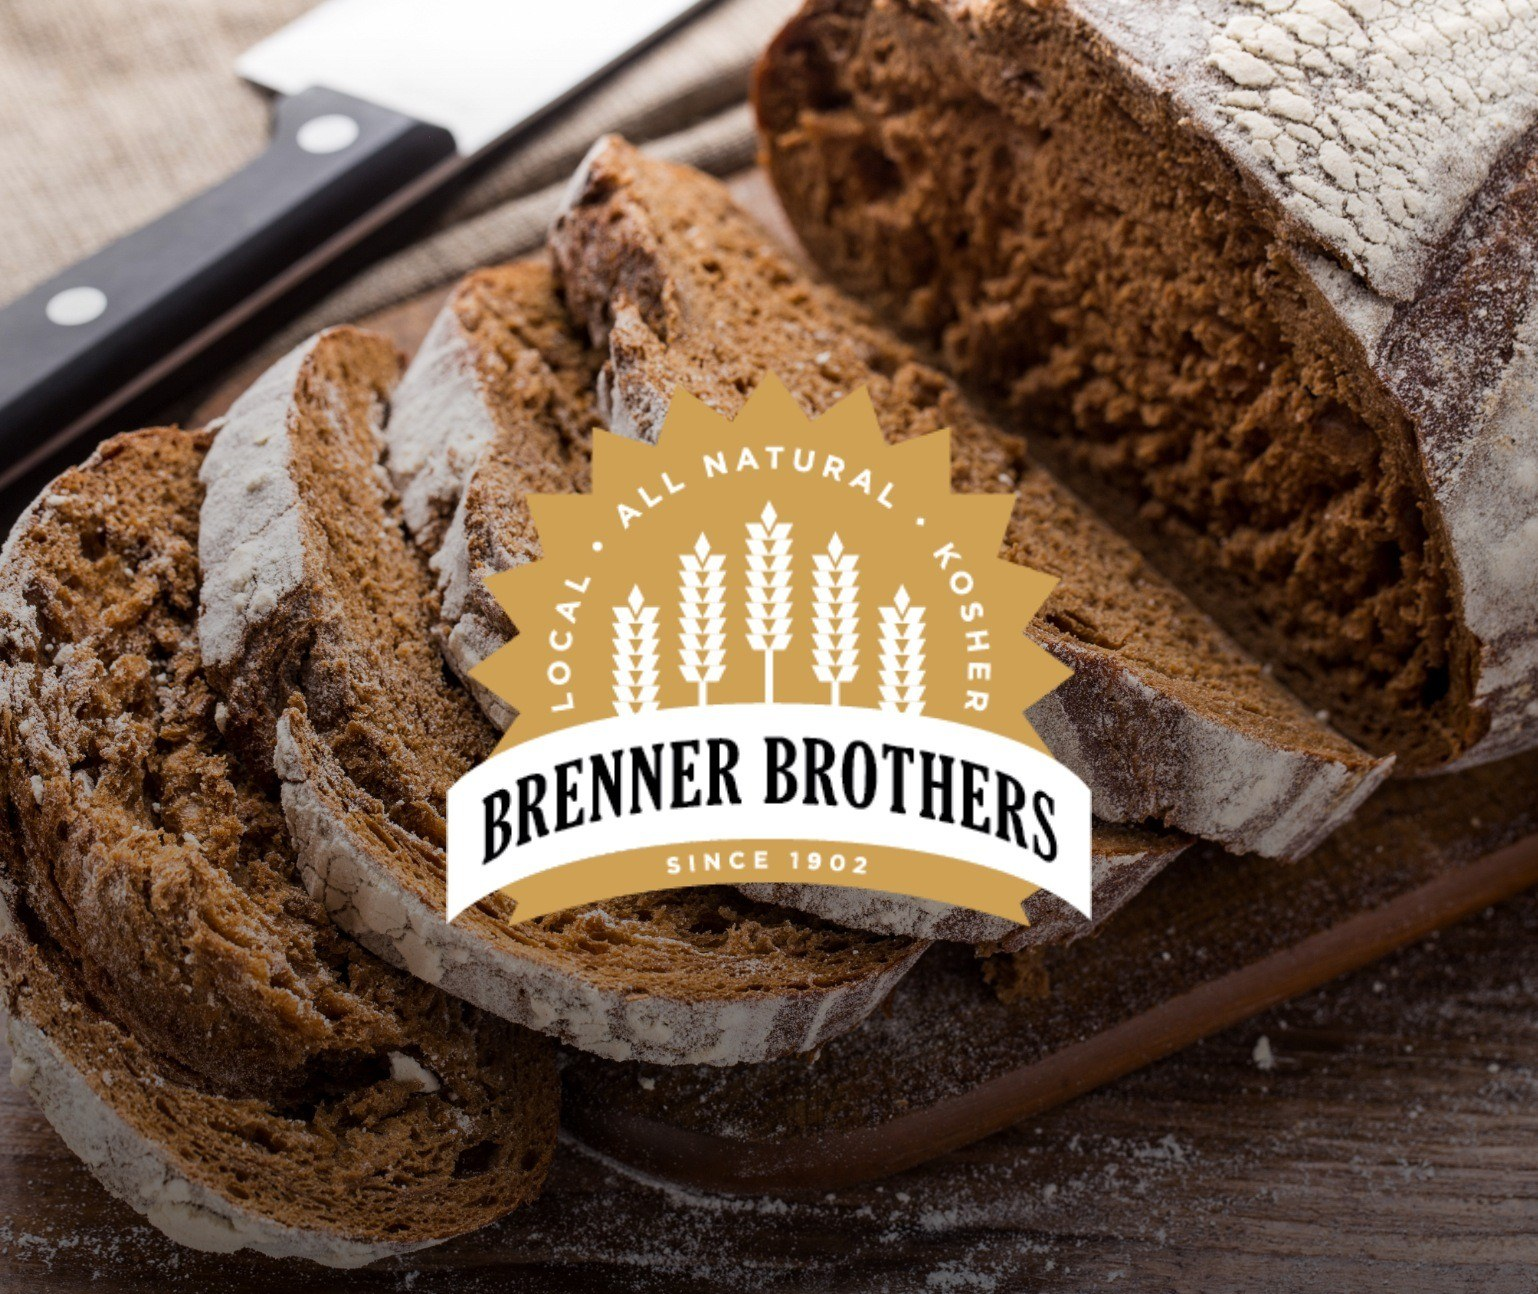 Logo with wheat in mustard over an image of sliced rye bread